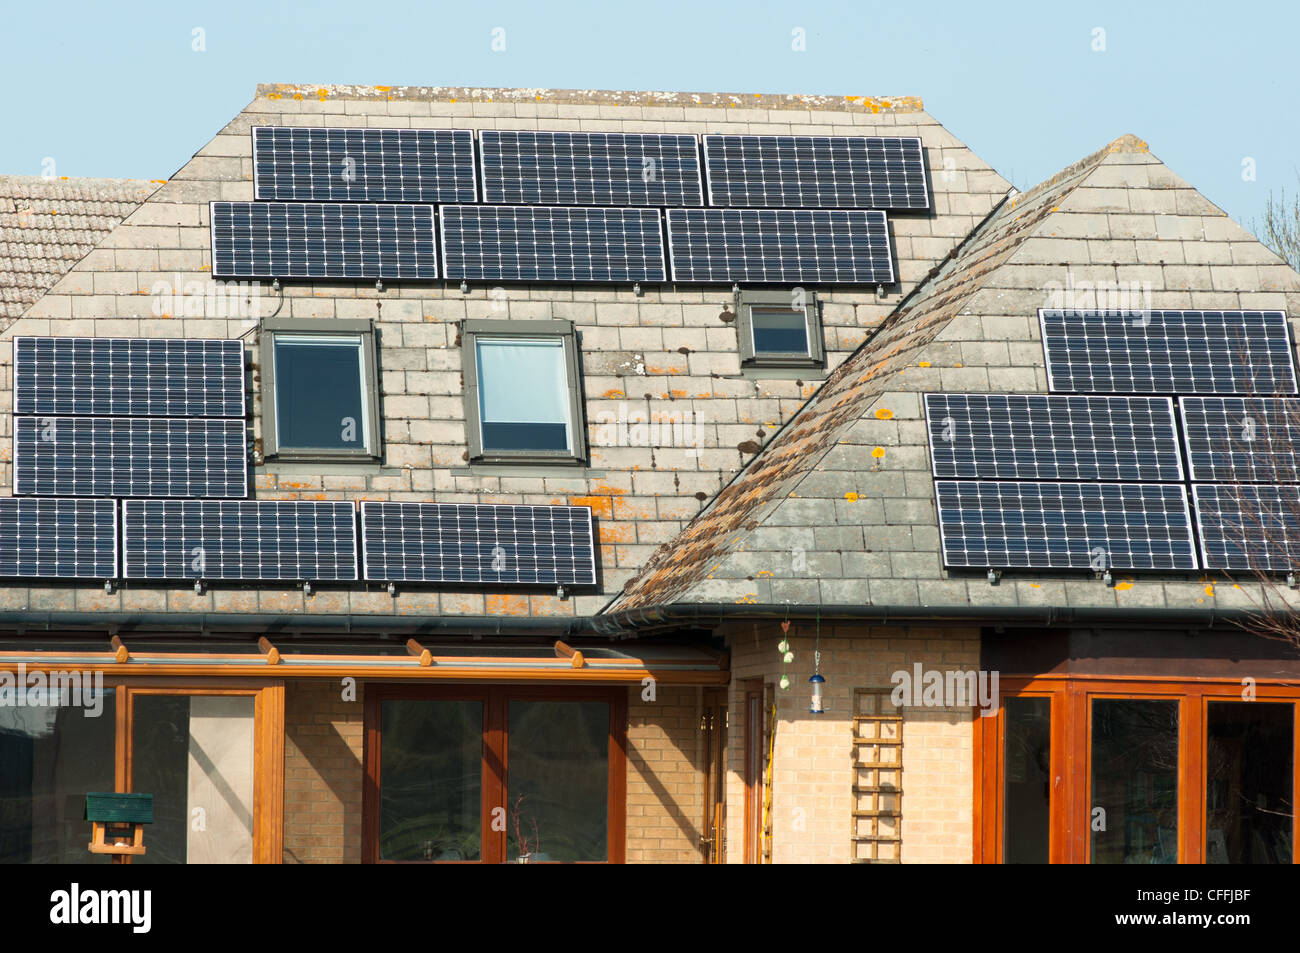 Solar panels on the roof of a house on the river Cam near Cambridge. England. - Stock Image